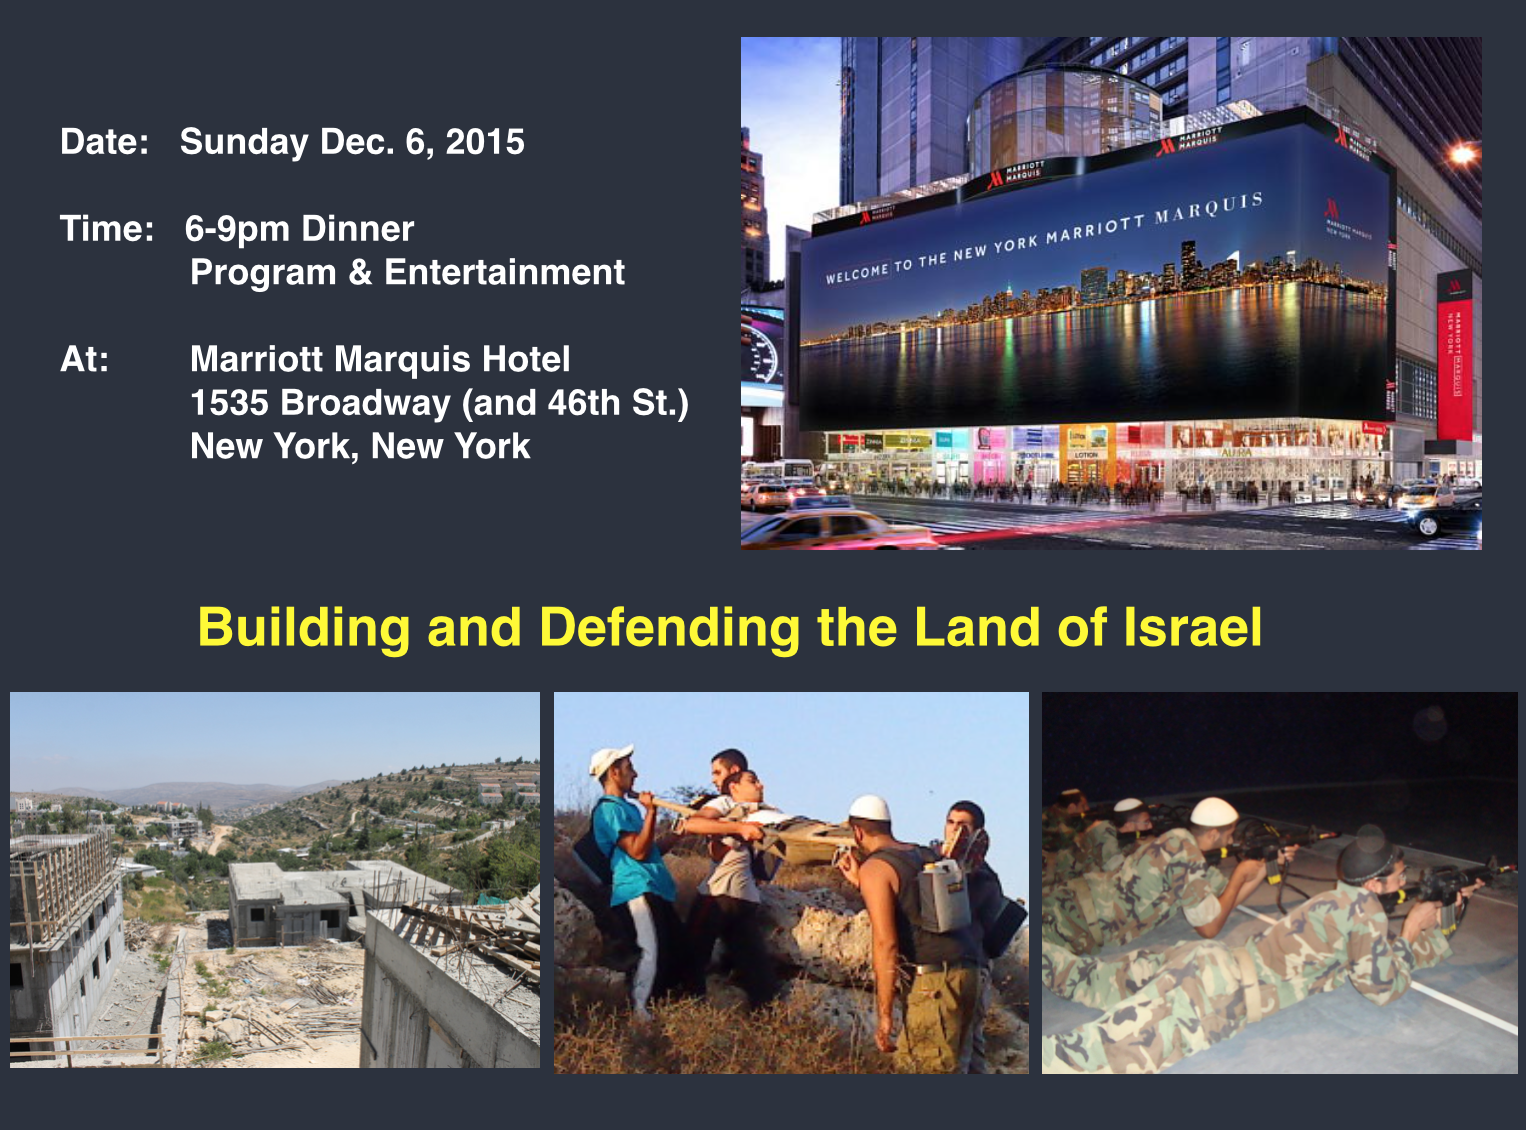 Building and Defending the Land of Israel 12Oct15